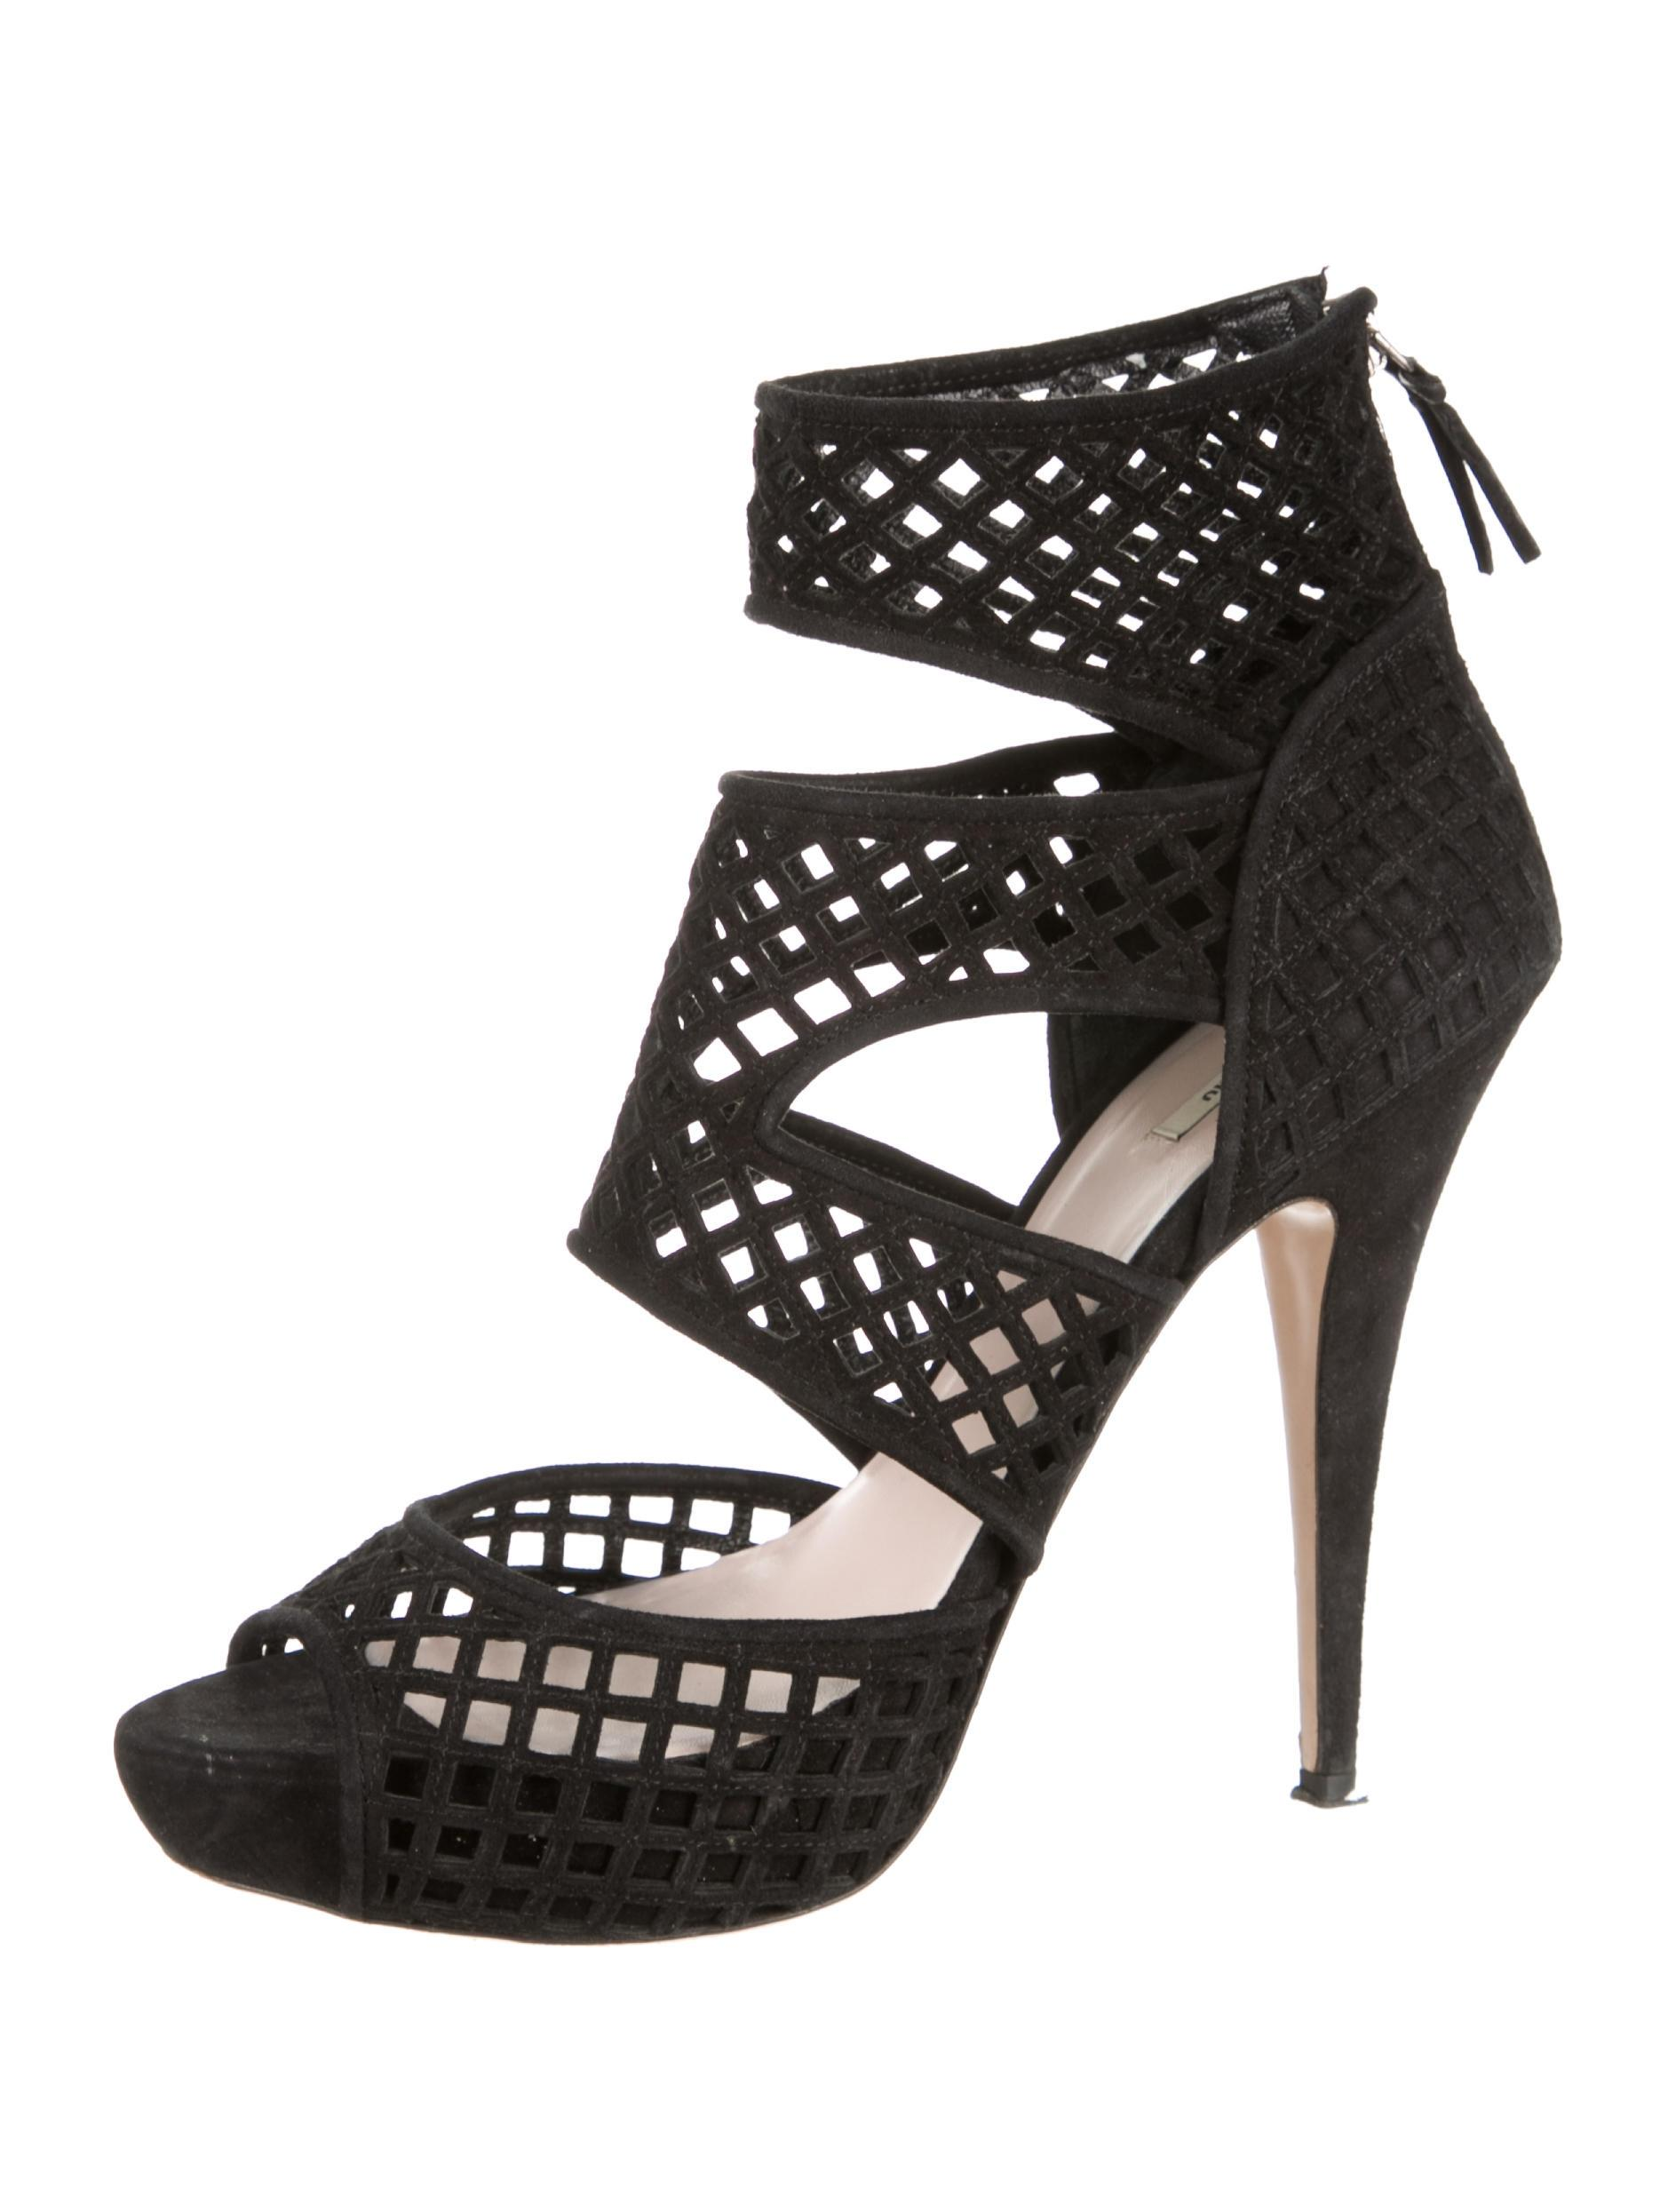 Miu Miu Suede Caged Sandals clearance big discount clearance affordable VpdjJFts0